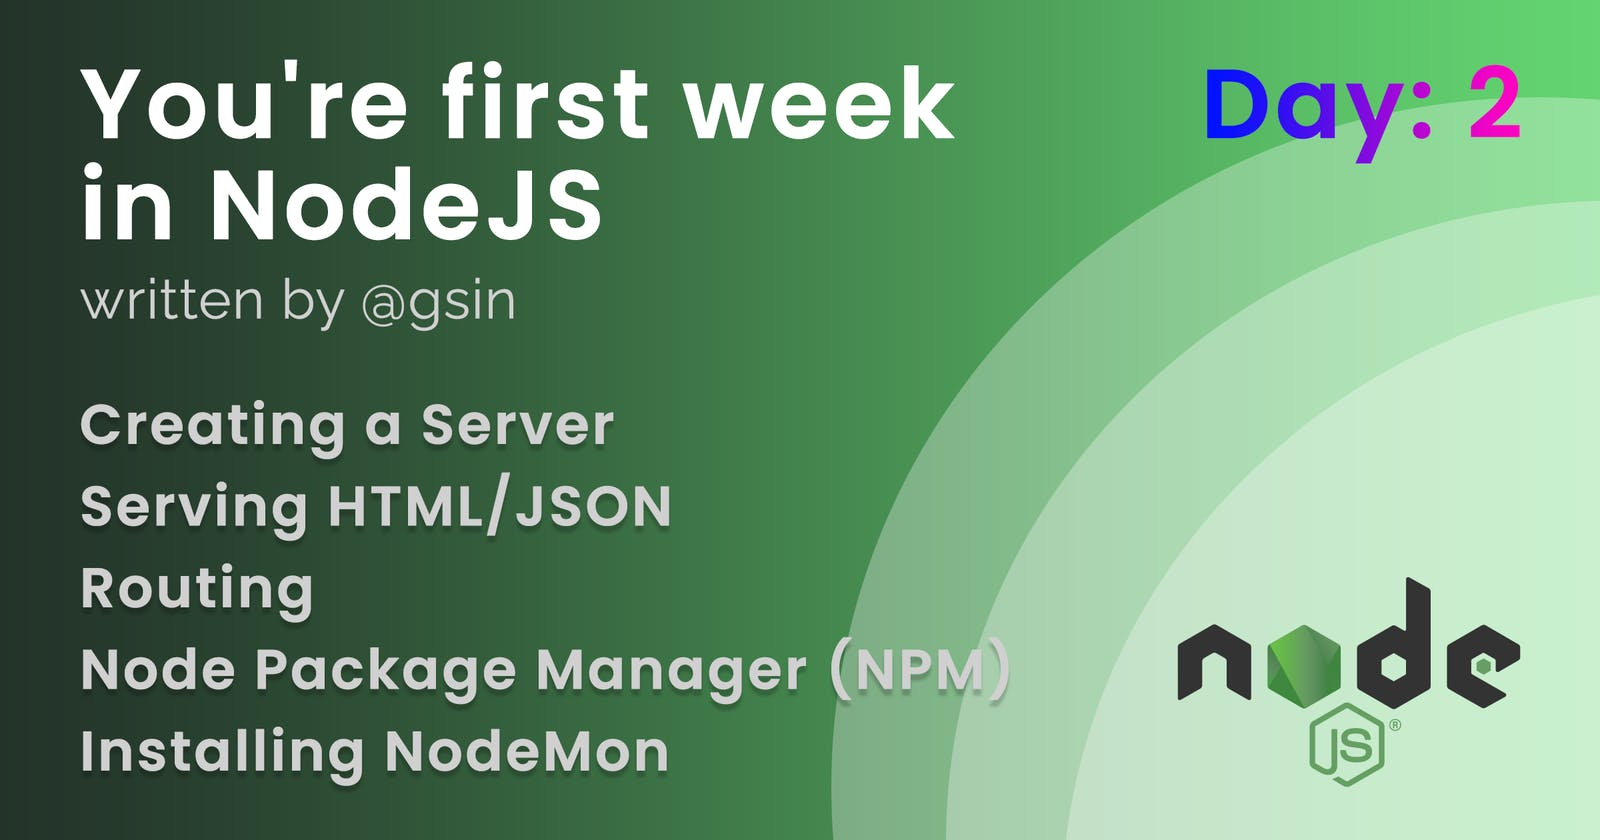 Day 2 - Your first week in NodeJS